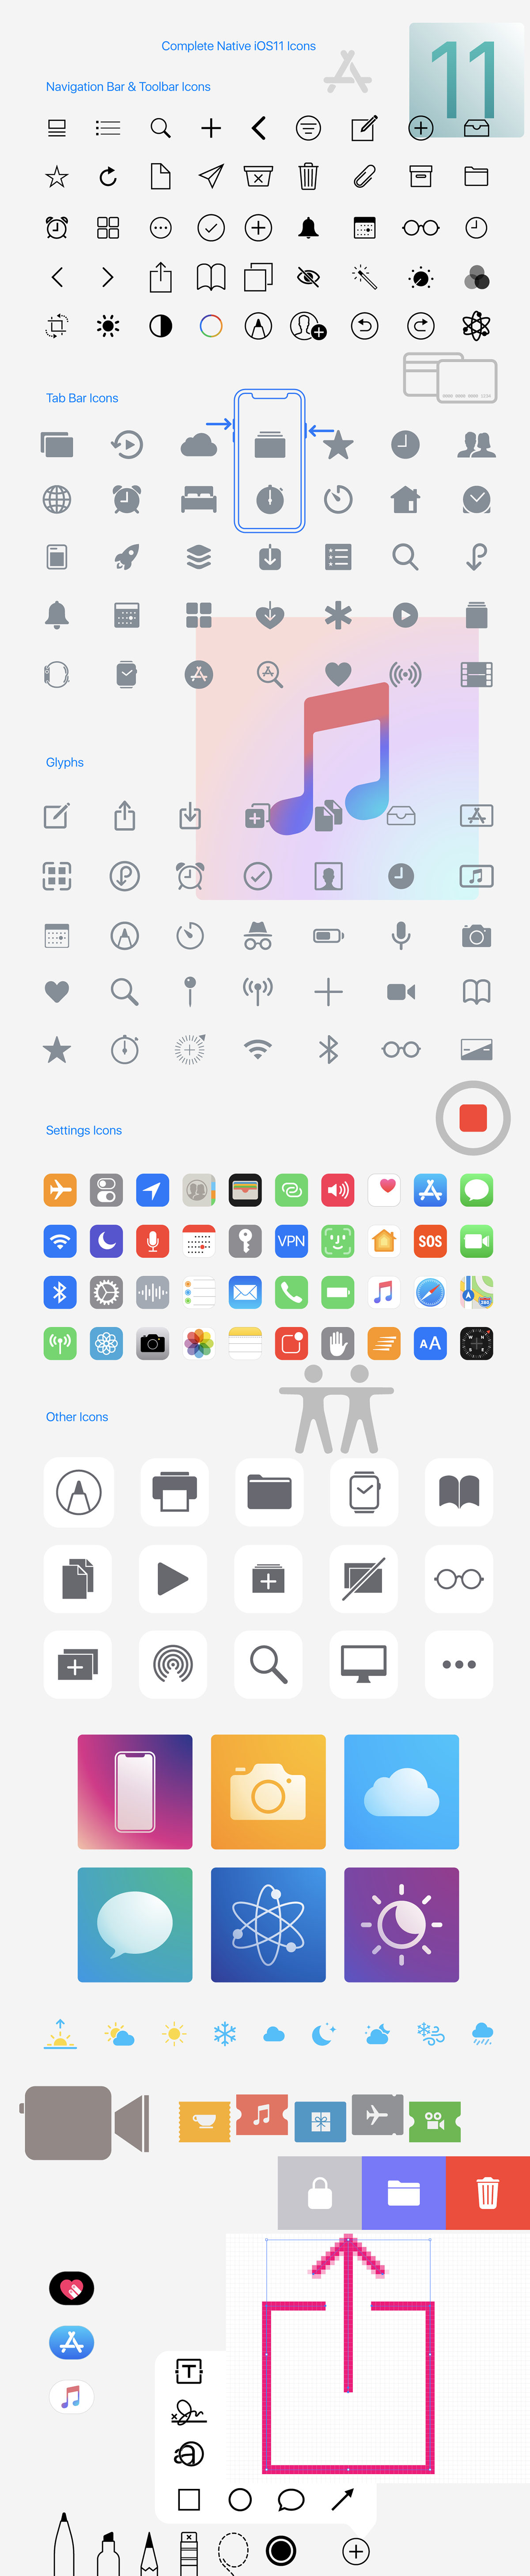 Complete Native iOS10 & iOS11 Icons for FREE Download on